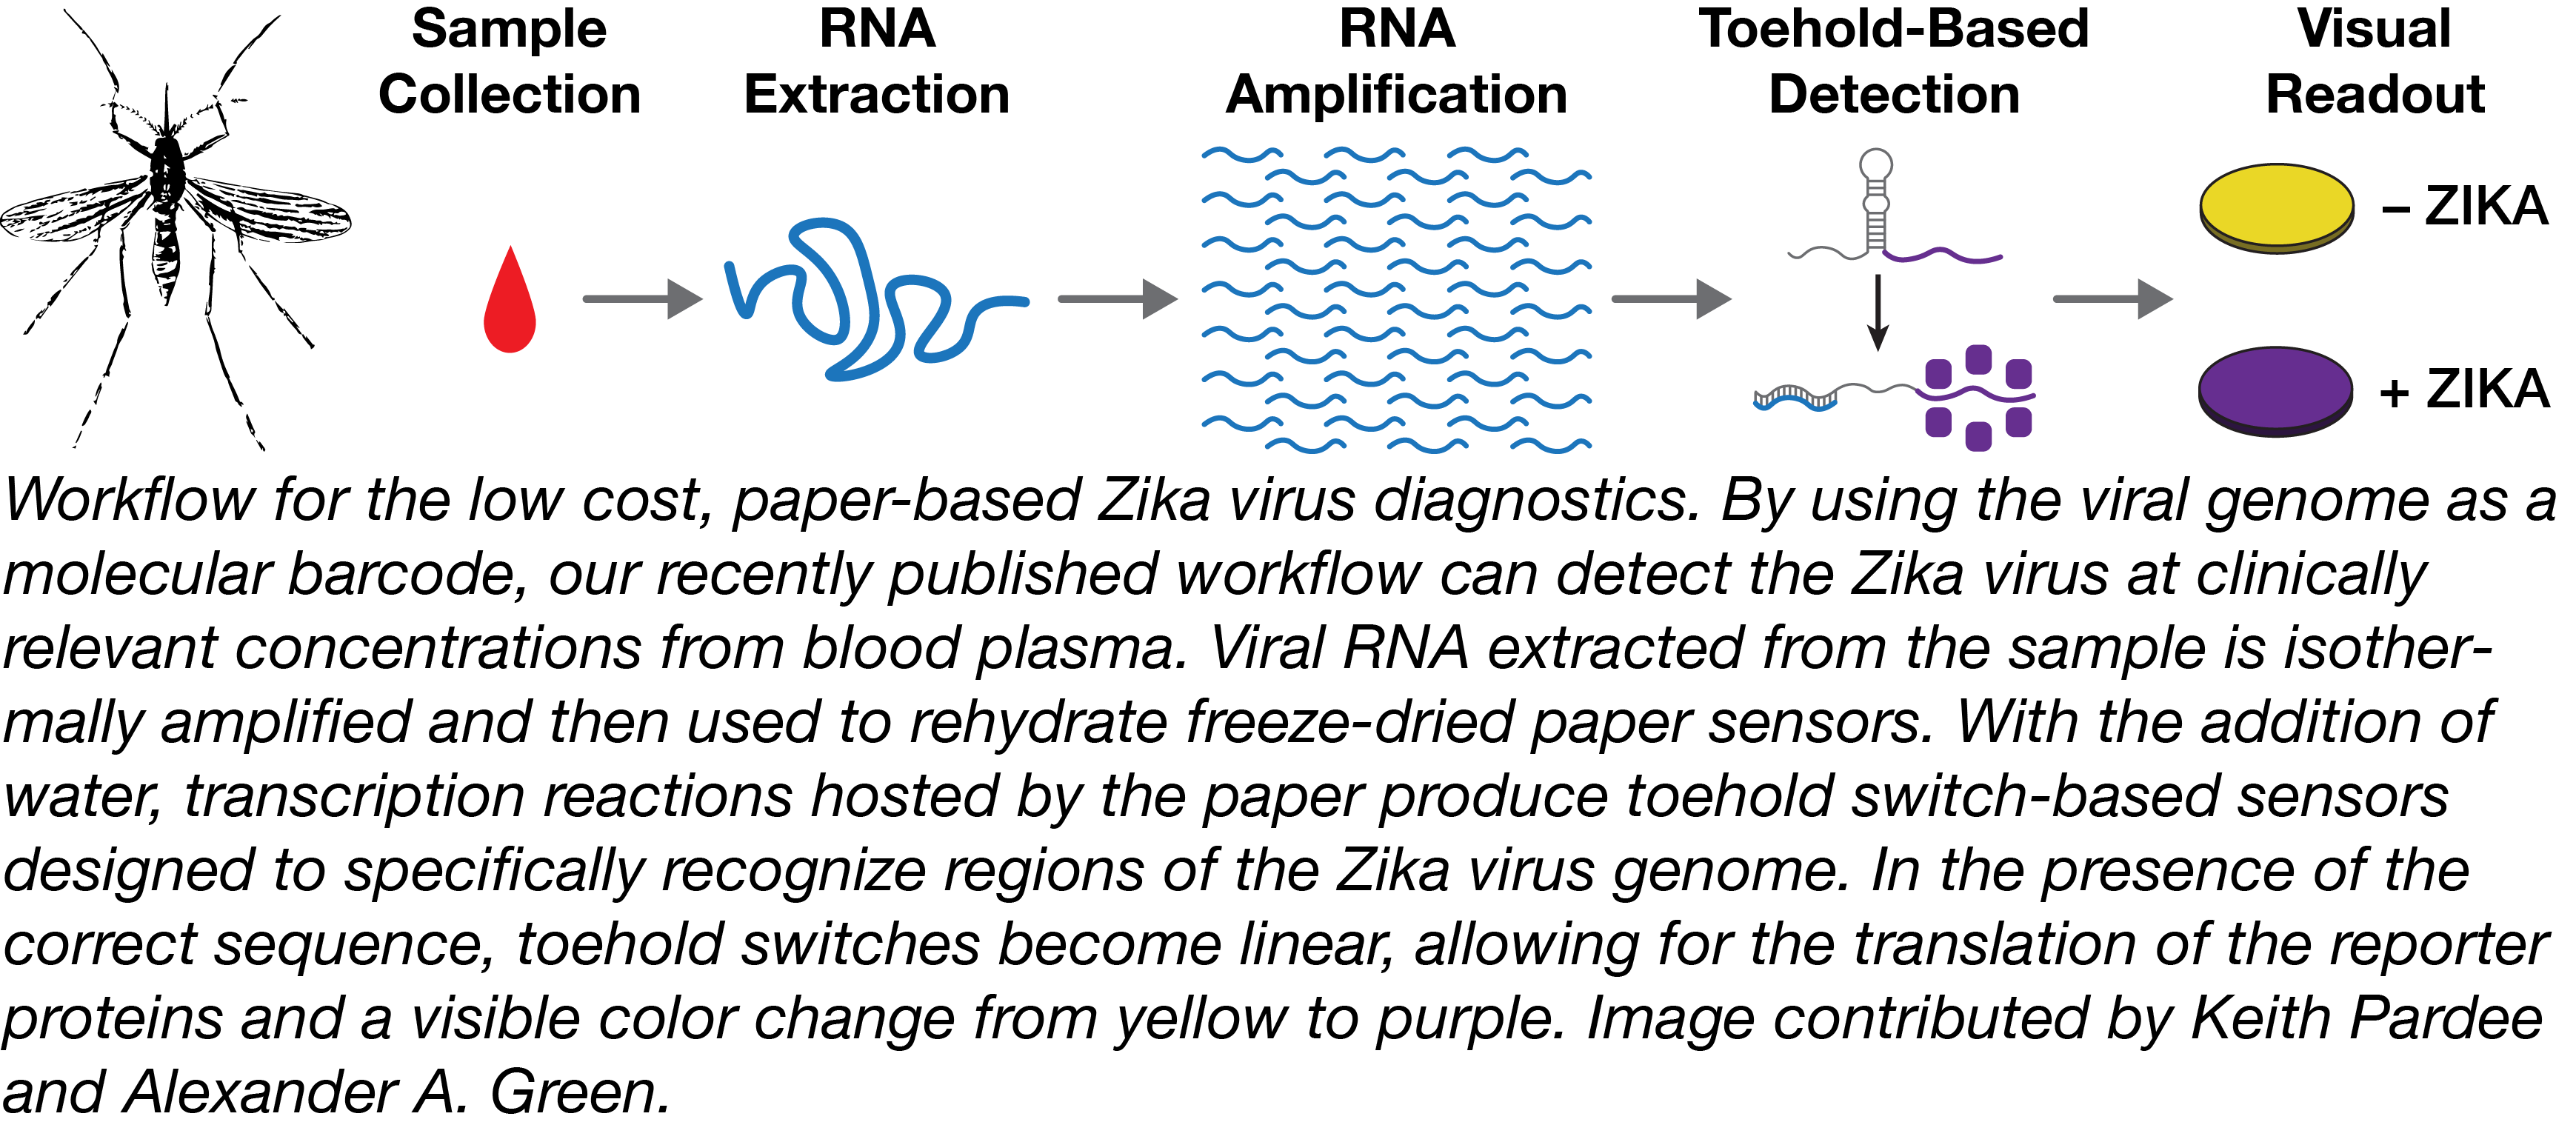 Zika detection workflow